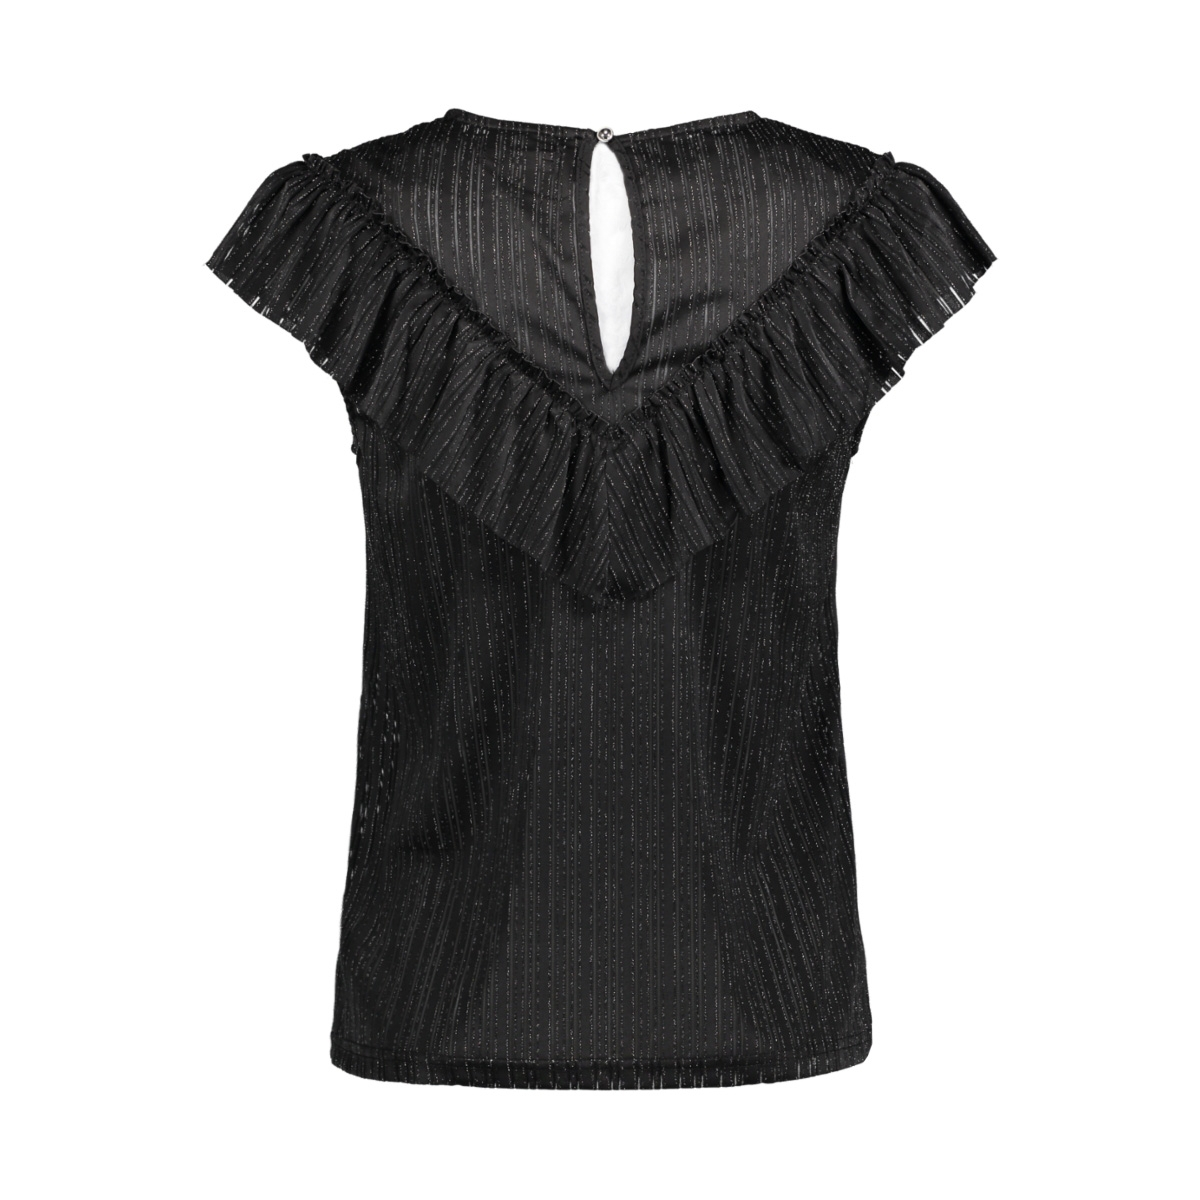 2034038.00.70 tom tailor blouse 2999